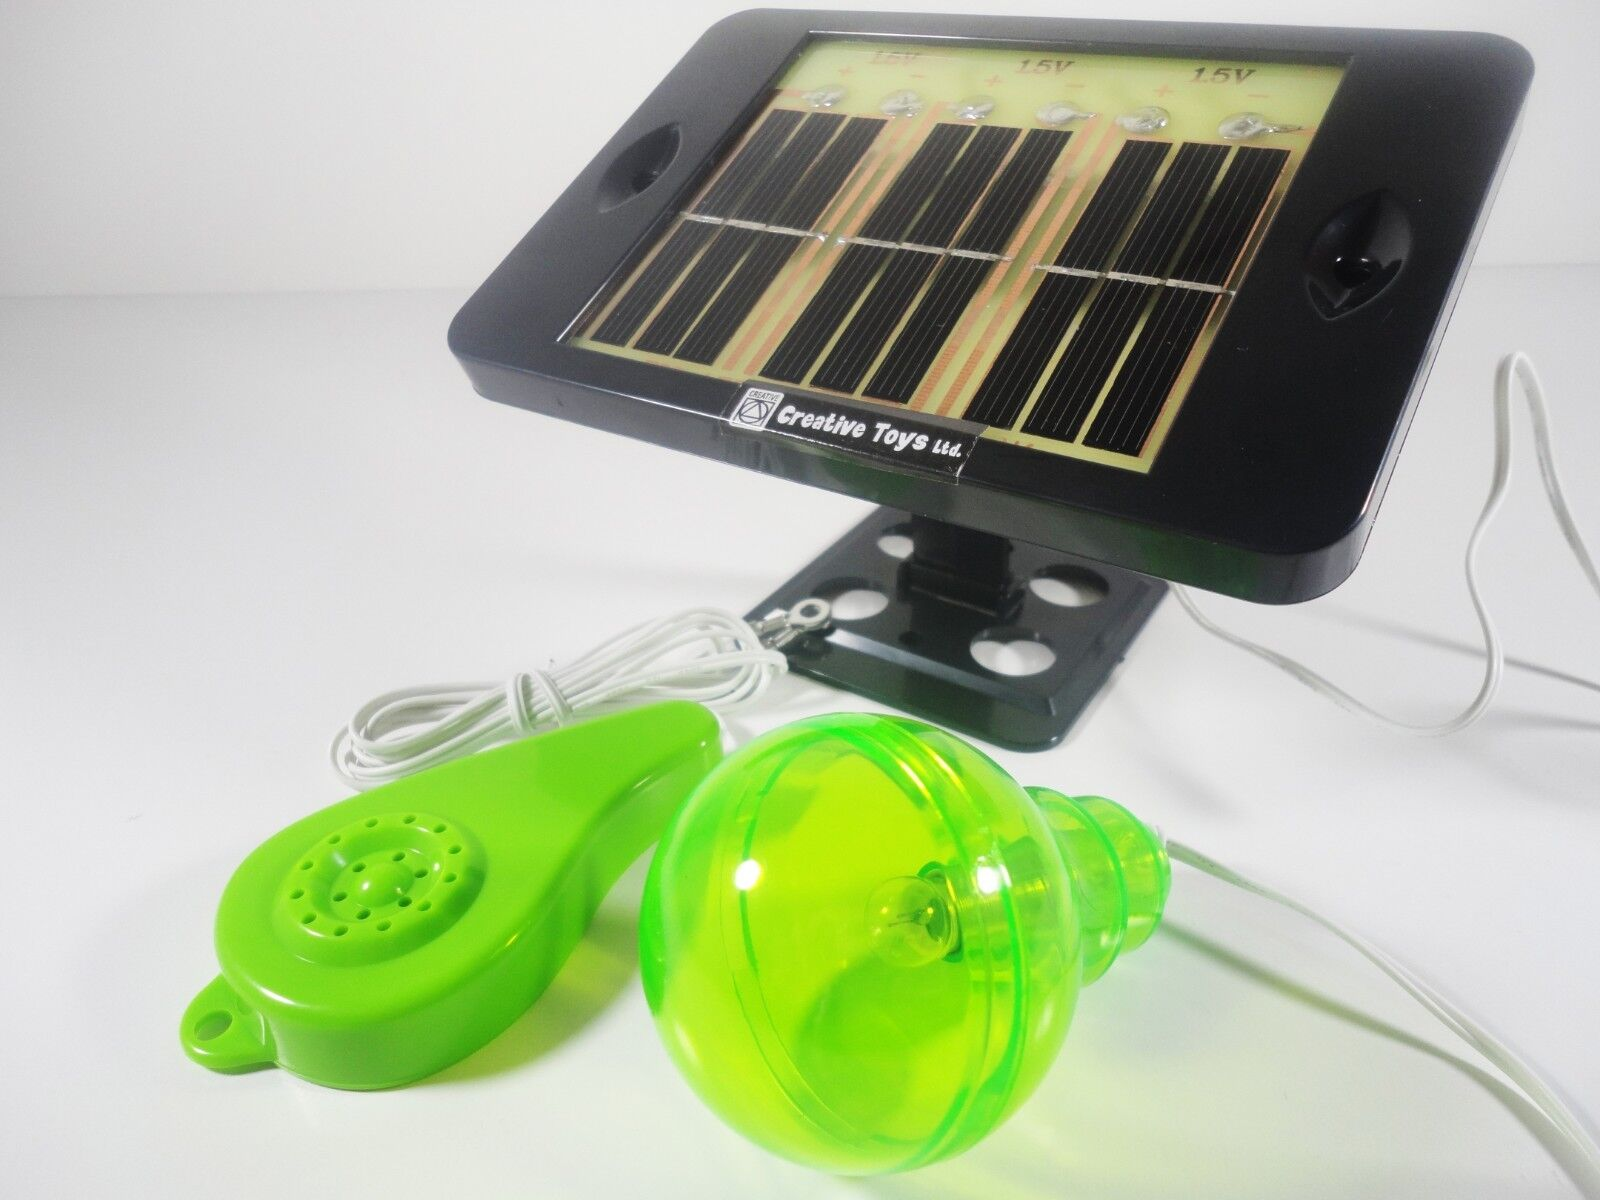 Build An Active Solar Energy System Toy Toy Toy Solar Science Kit Game Physics Science ceab9e